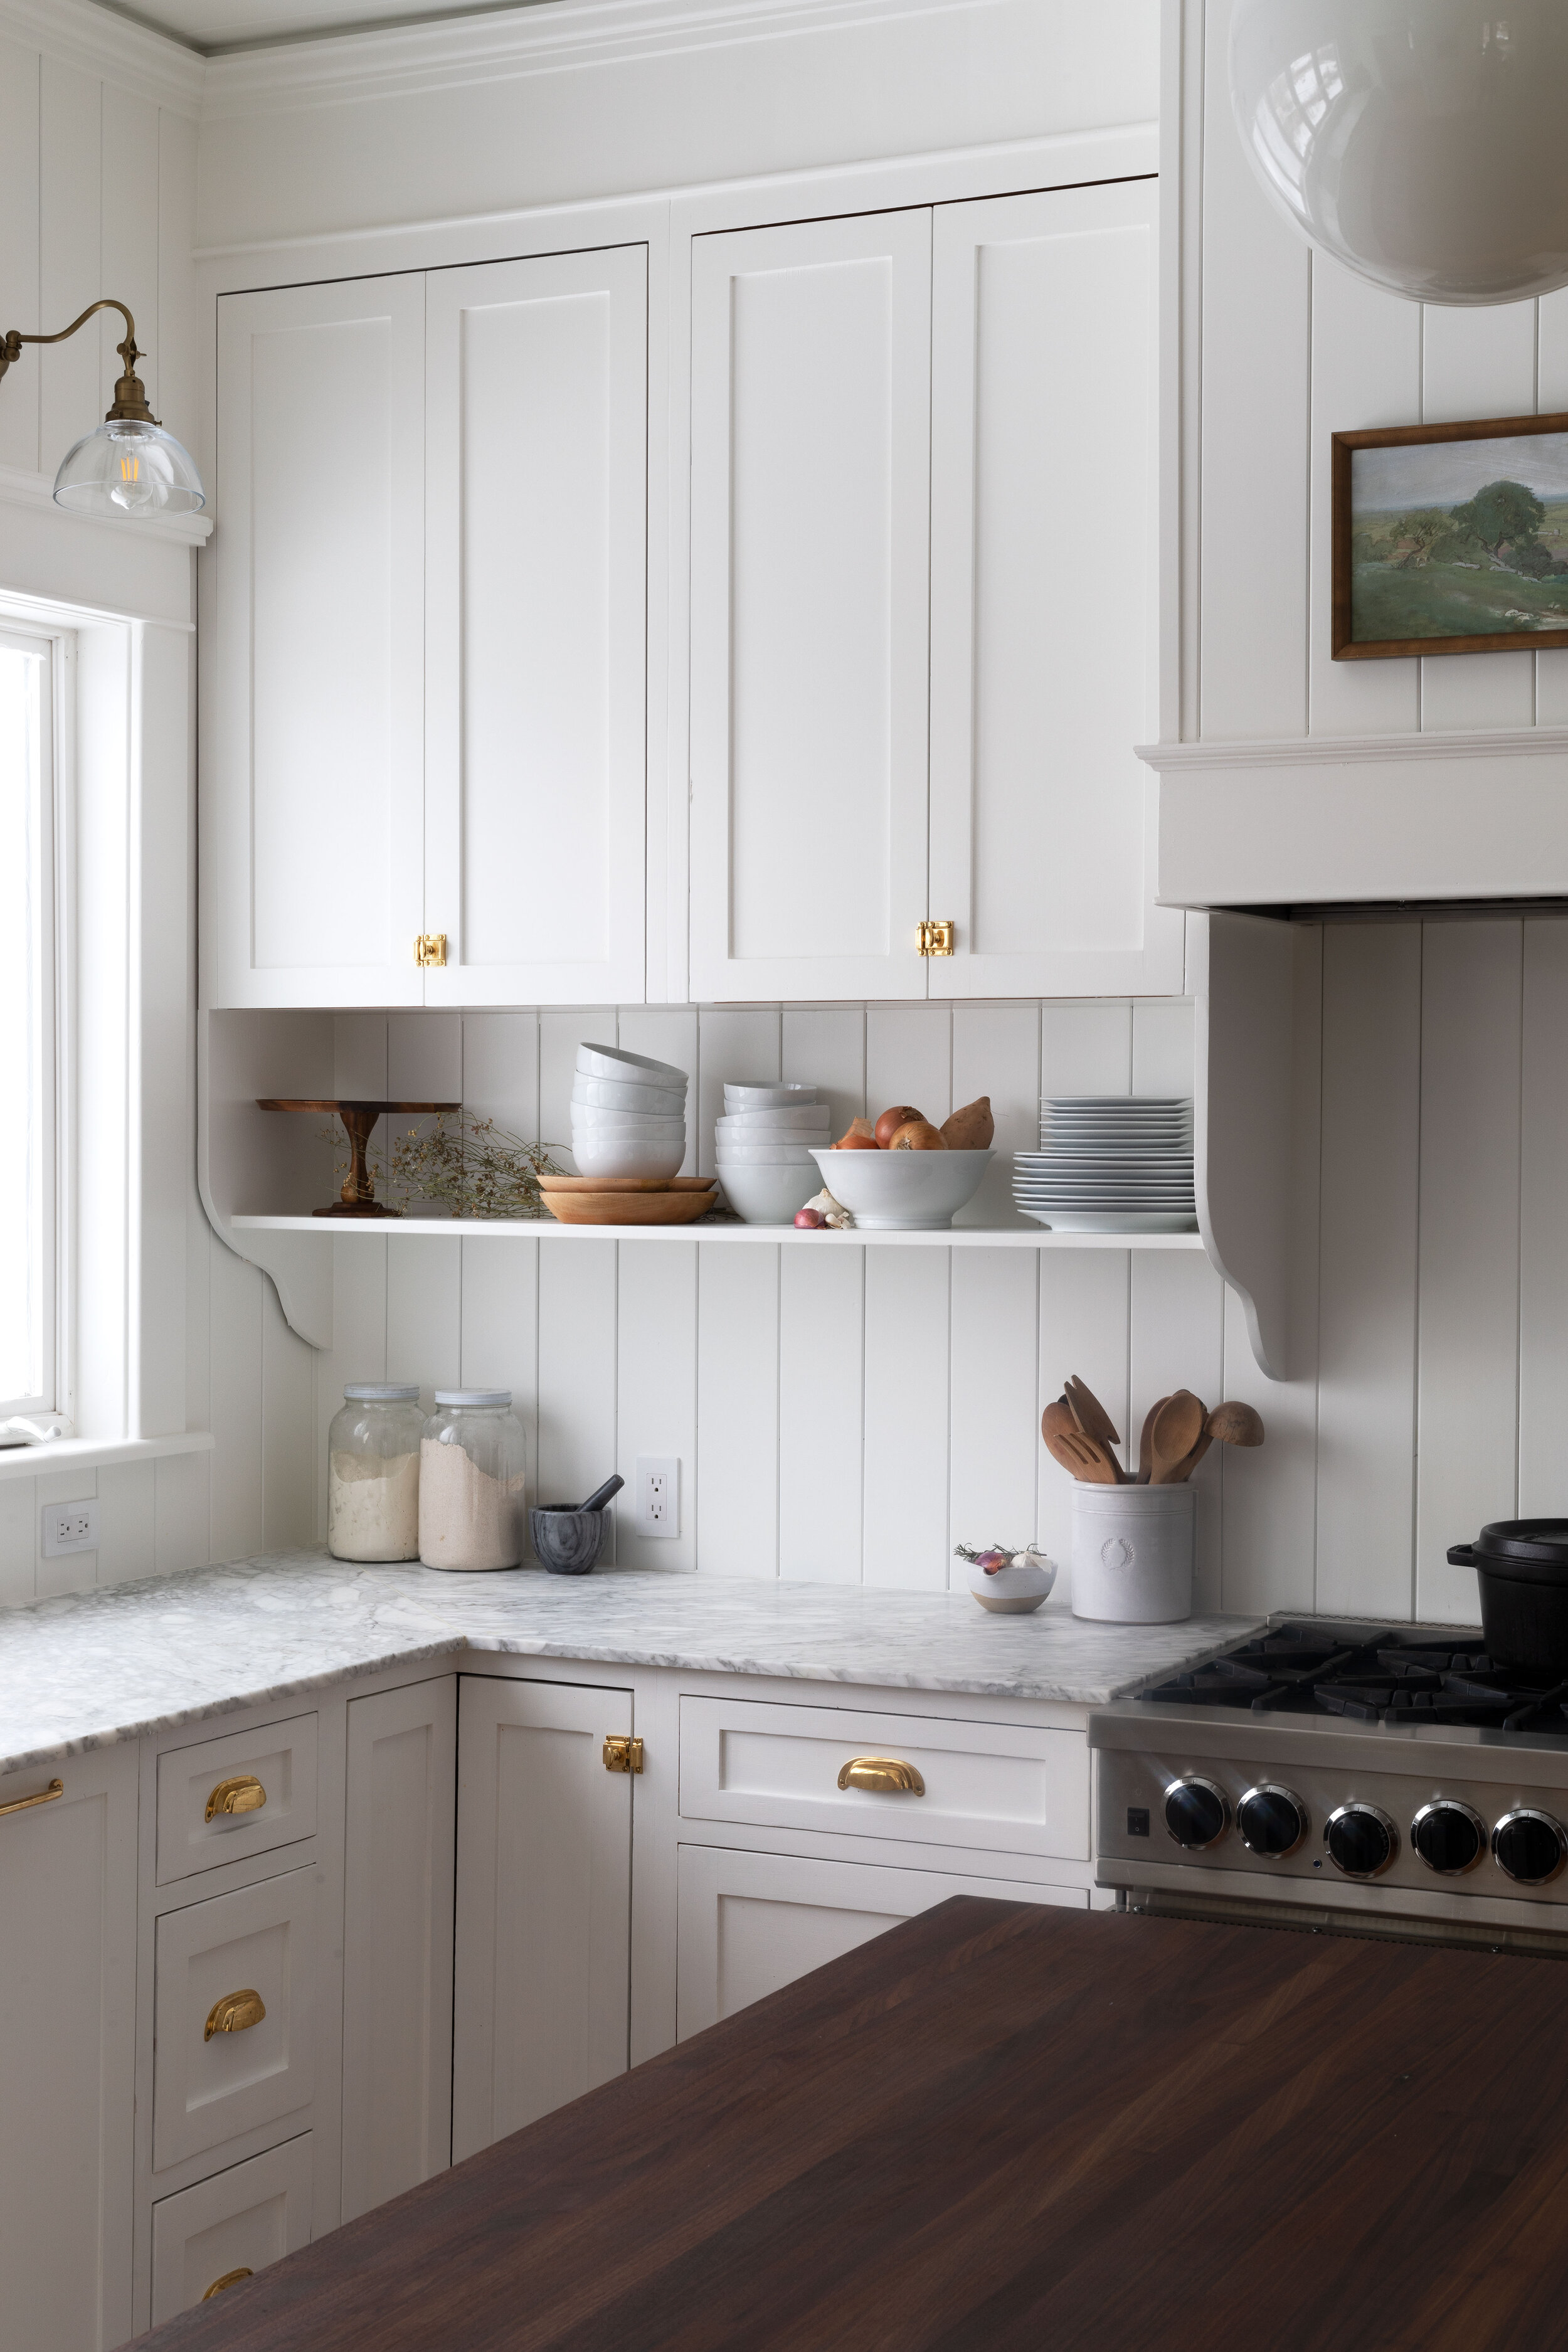 The Grit and Polish - Farmhouse Country Kitchen Reveal 3.0 27 web.jpg